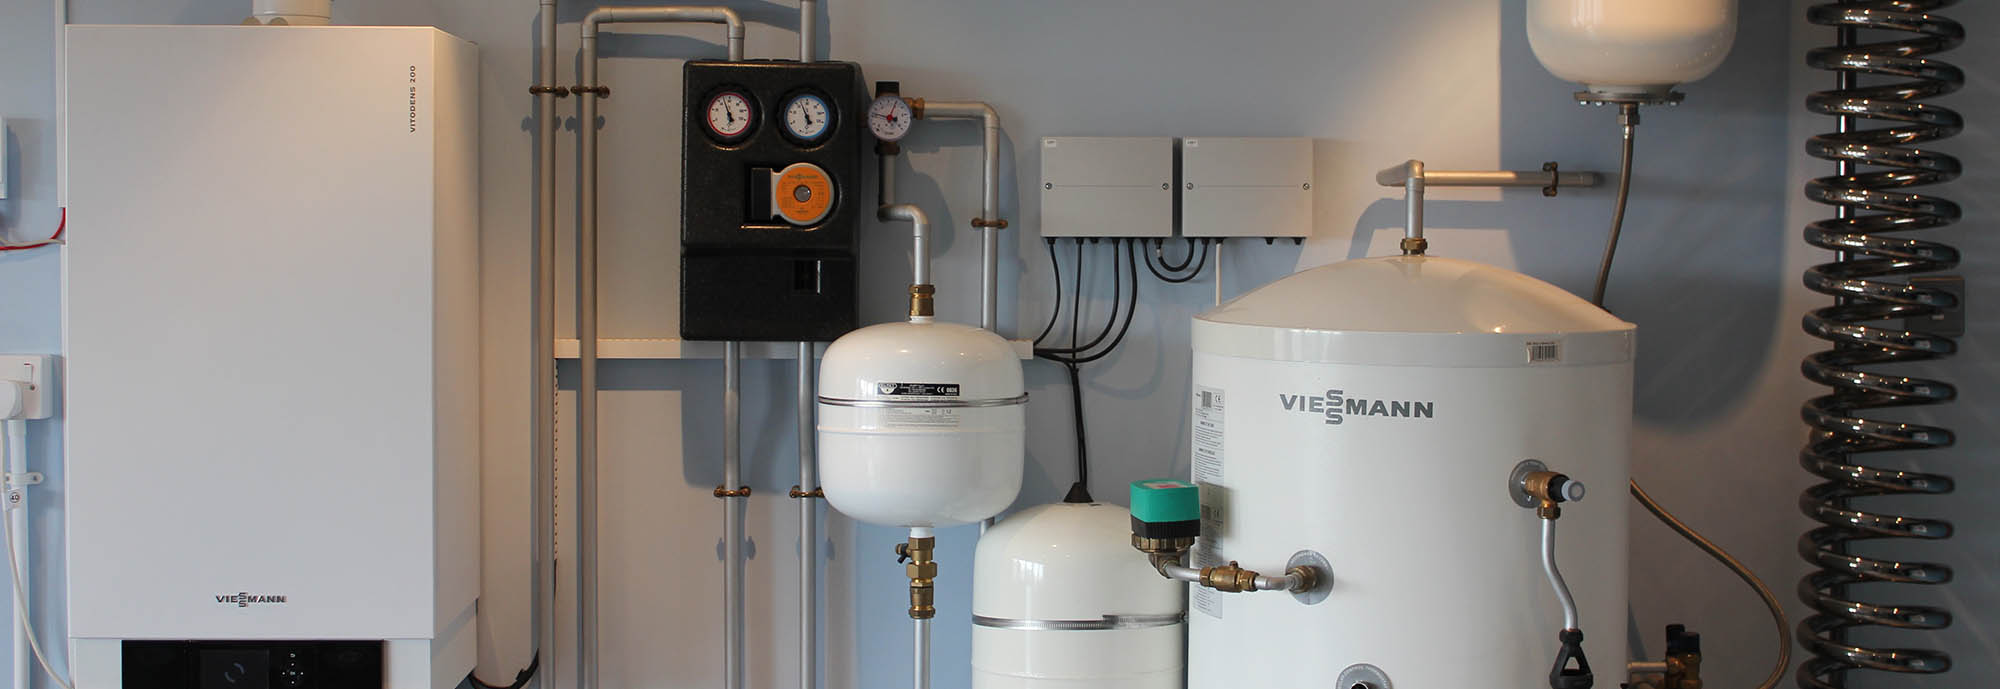 High Efficiency Viessmann Gas Boilers